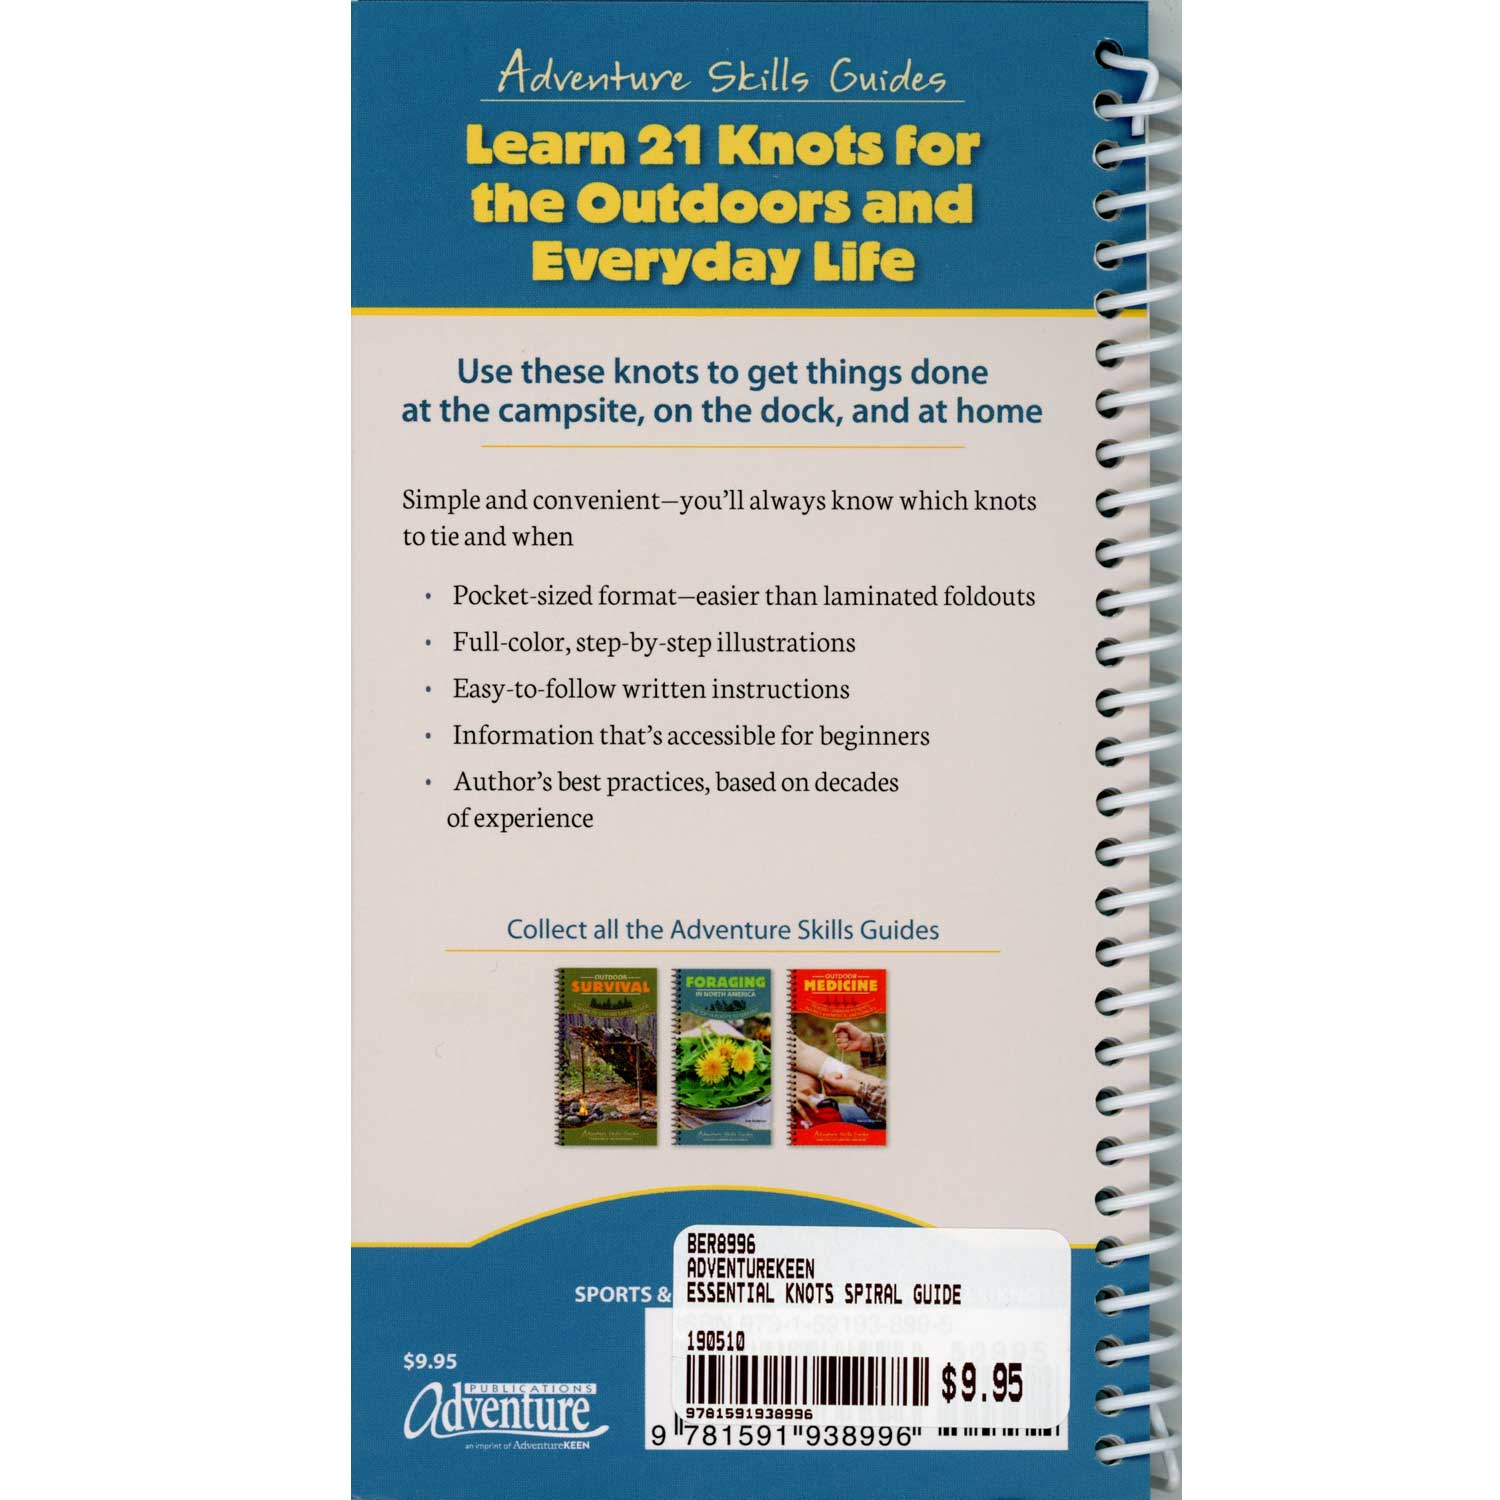 Essential Knots : Secure You Gear When Camping, Hiking, Fishing, And  Playing Outdoors By Karen Berger | Boundary Waters Catalog